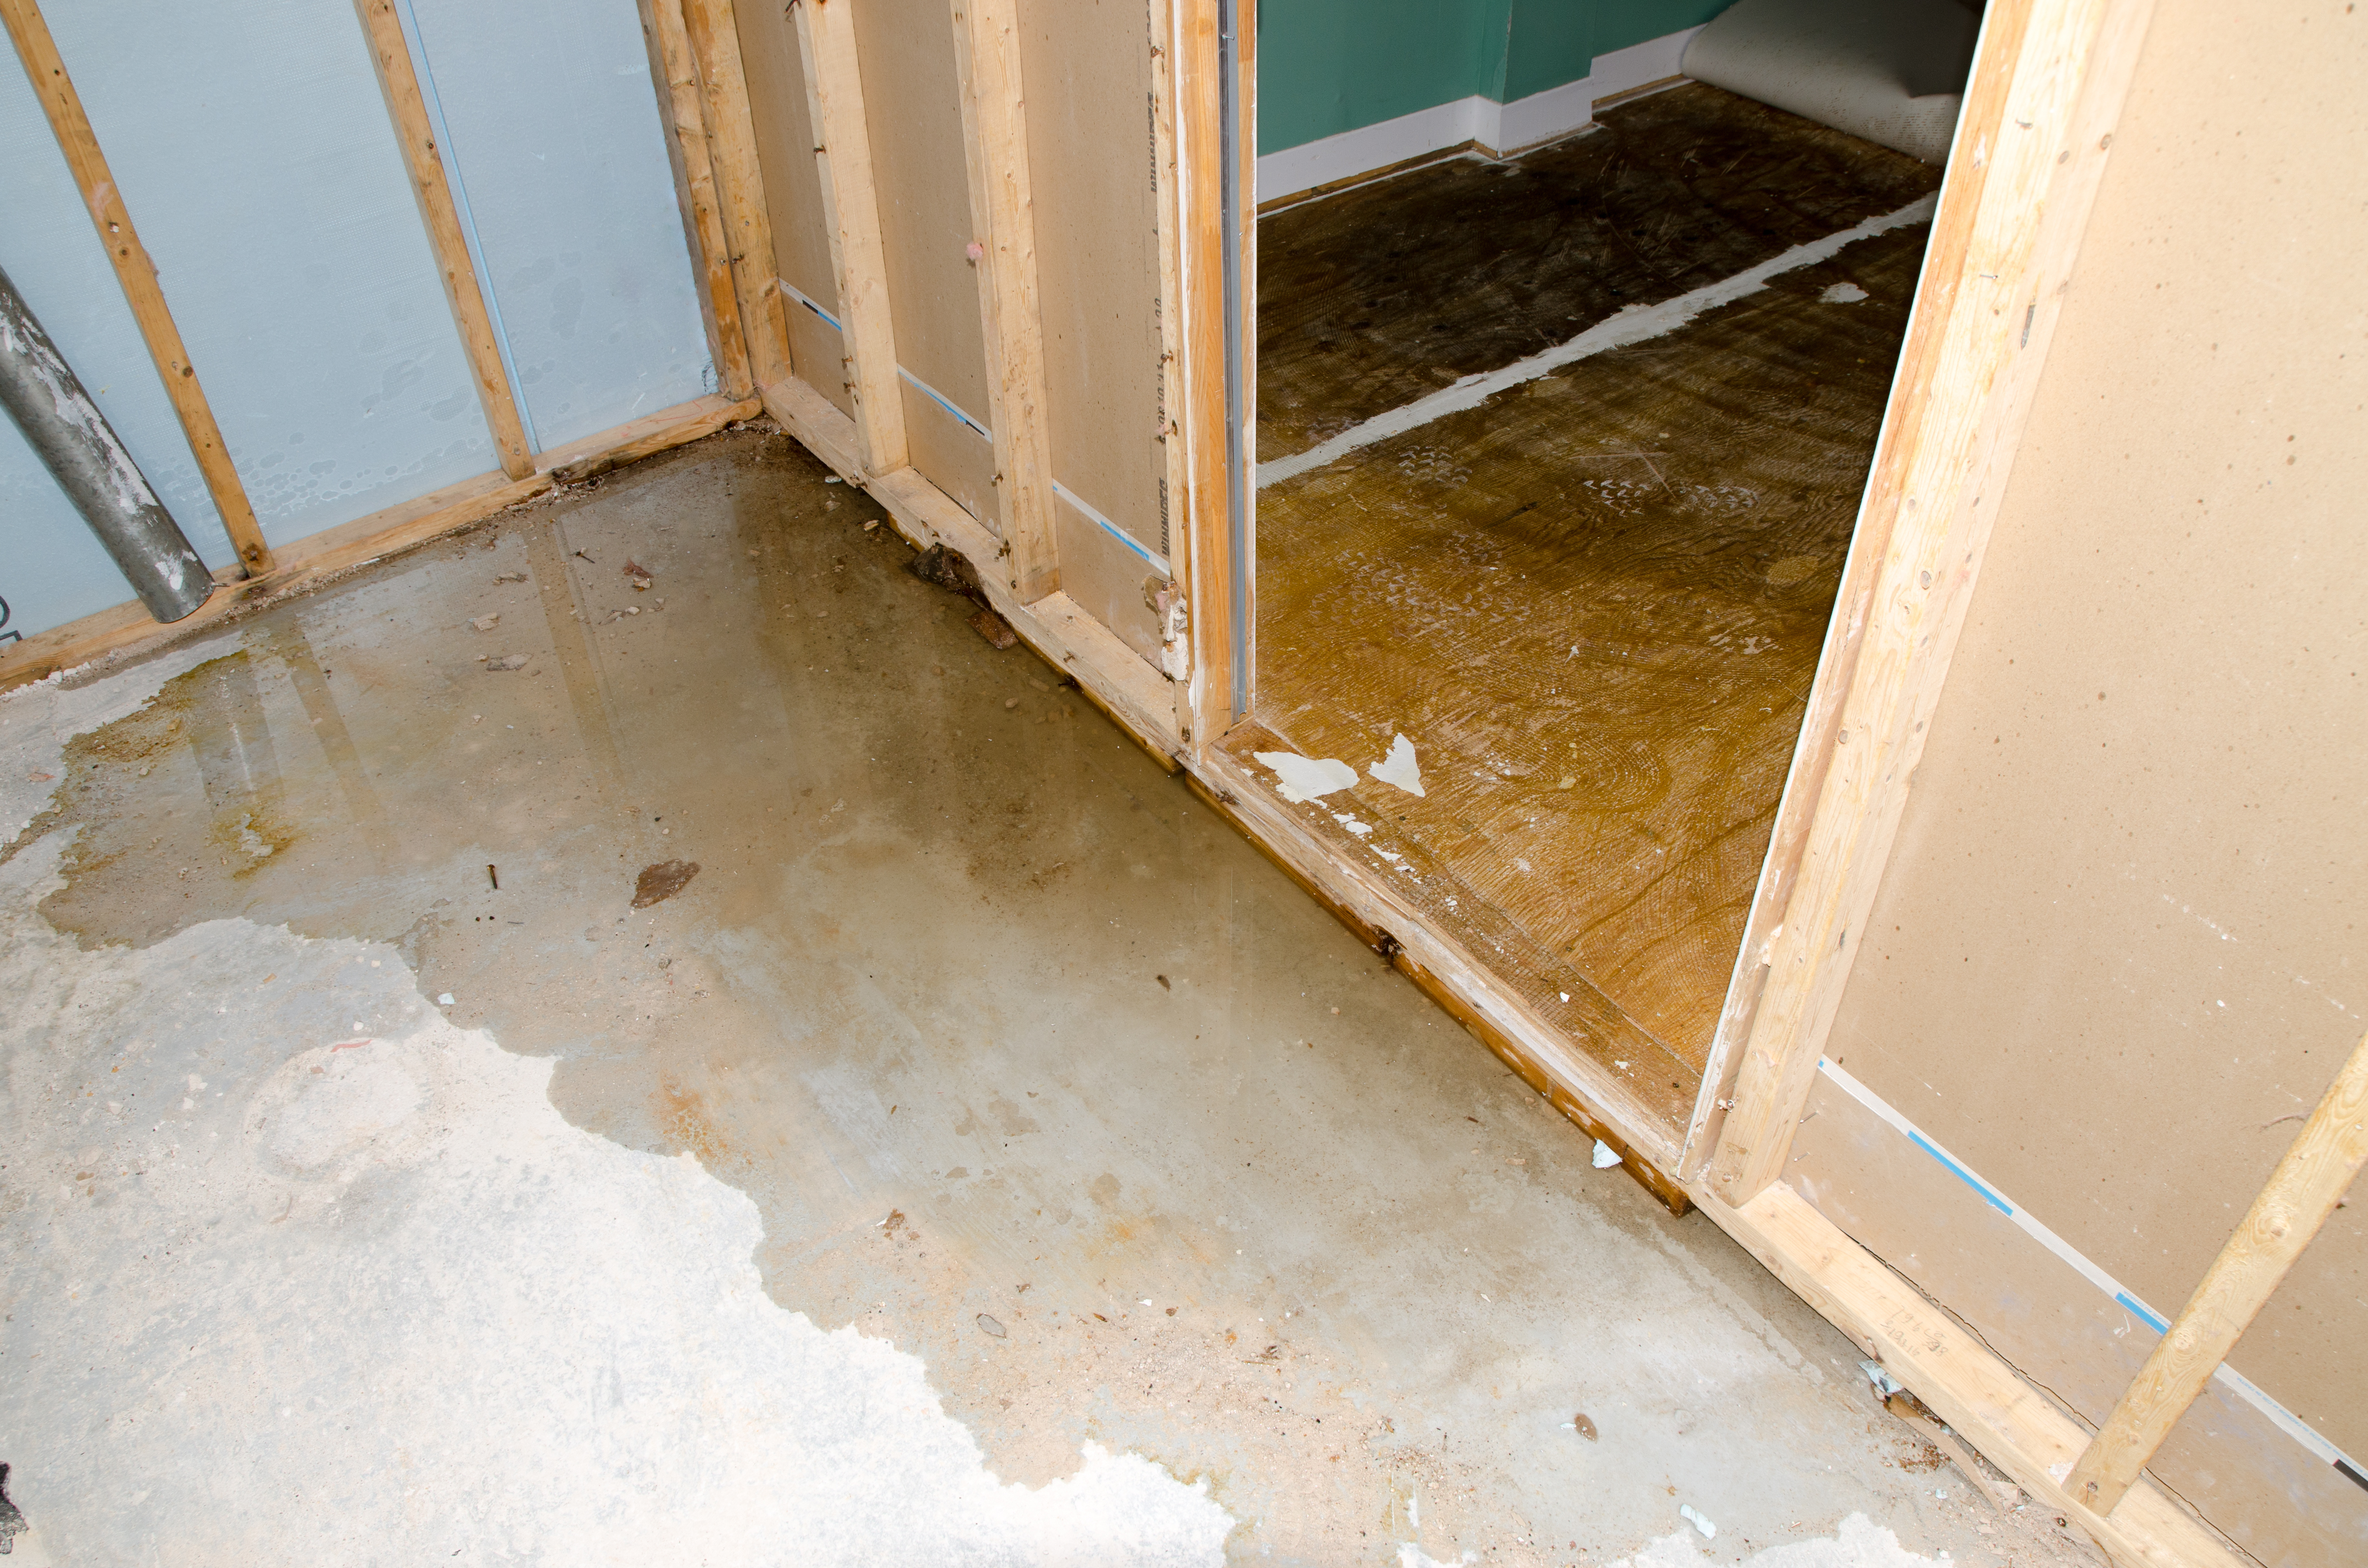 Dealing With Mold In A Home After Hurricane